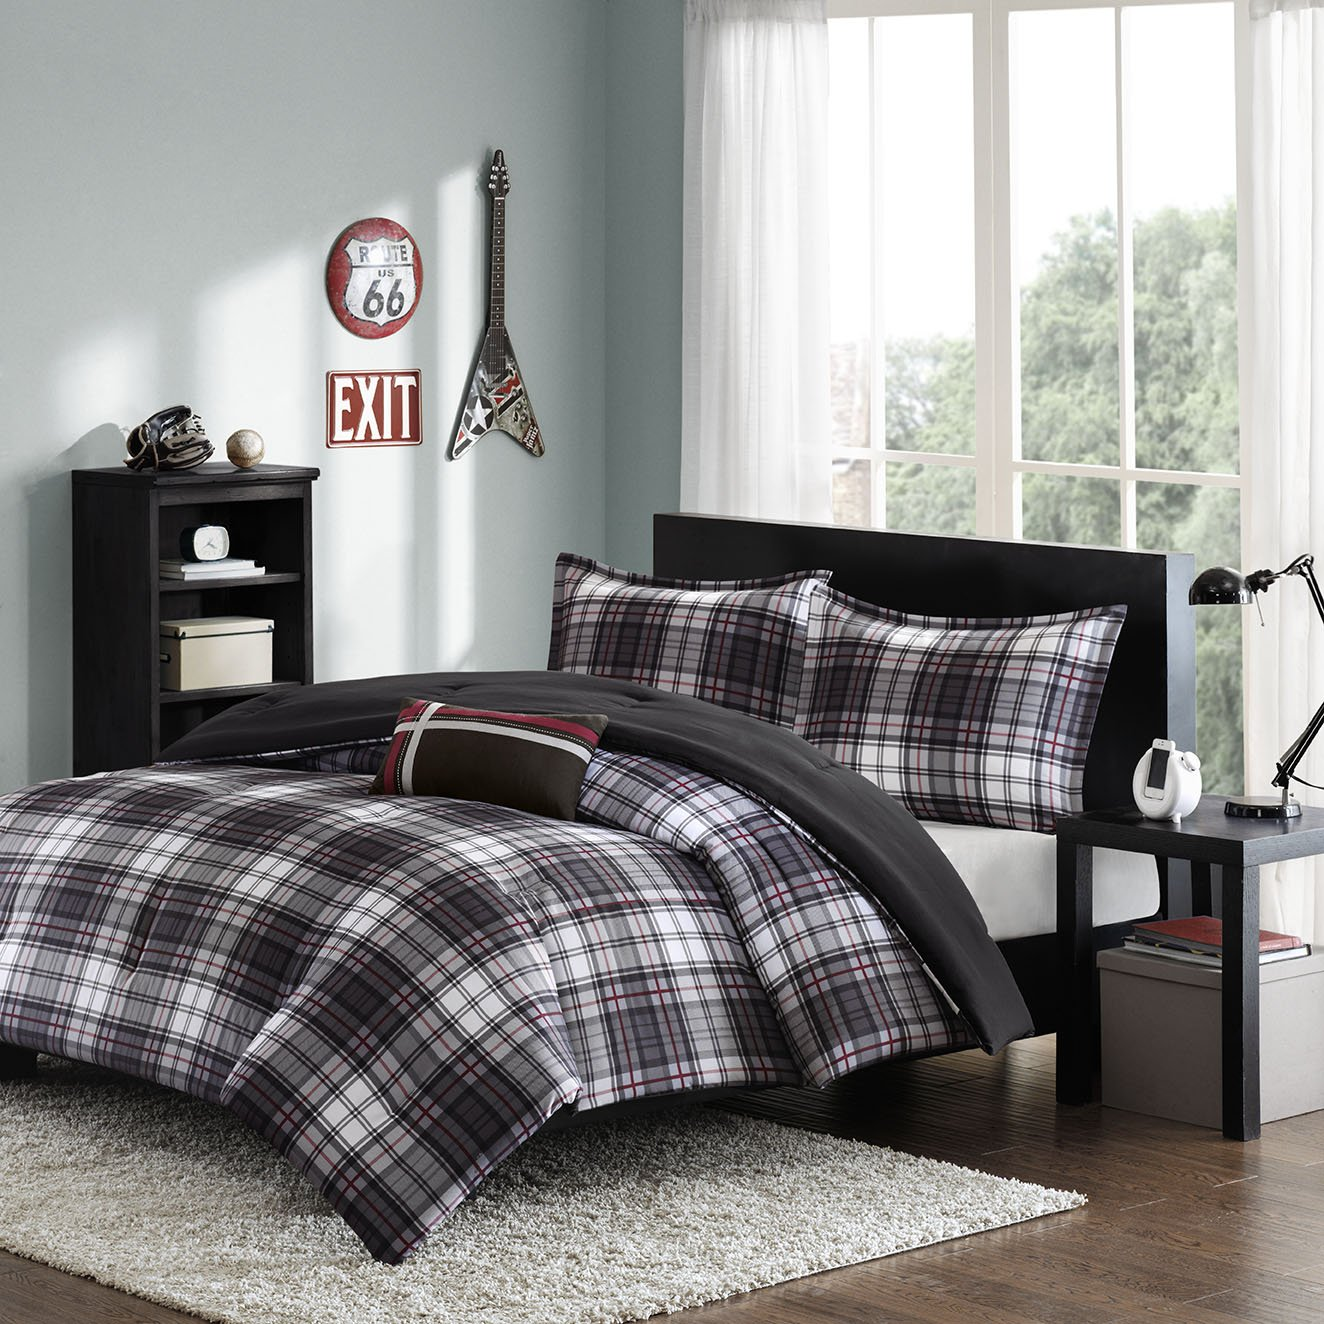 cover kirkland themed buffalo target scottish minis luxury ikea sheets plaid duvet with set sets men check checked tommy king mini home accessories decorating blue for tartan red bedrooms bedding comforter and ruta ideas bedroom gray review emmie